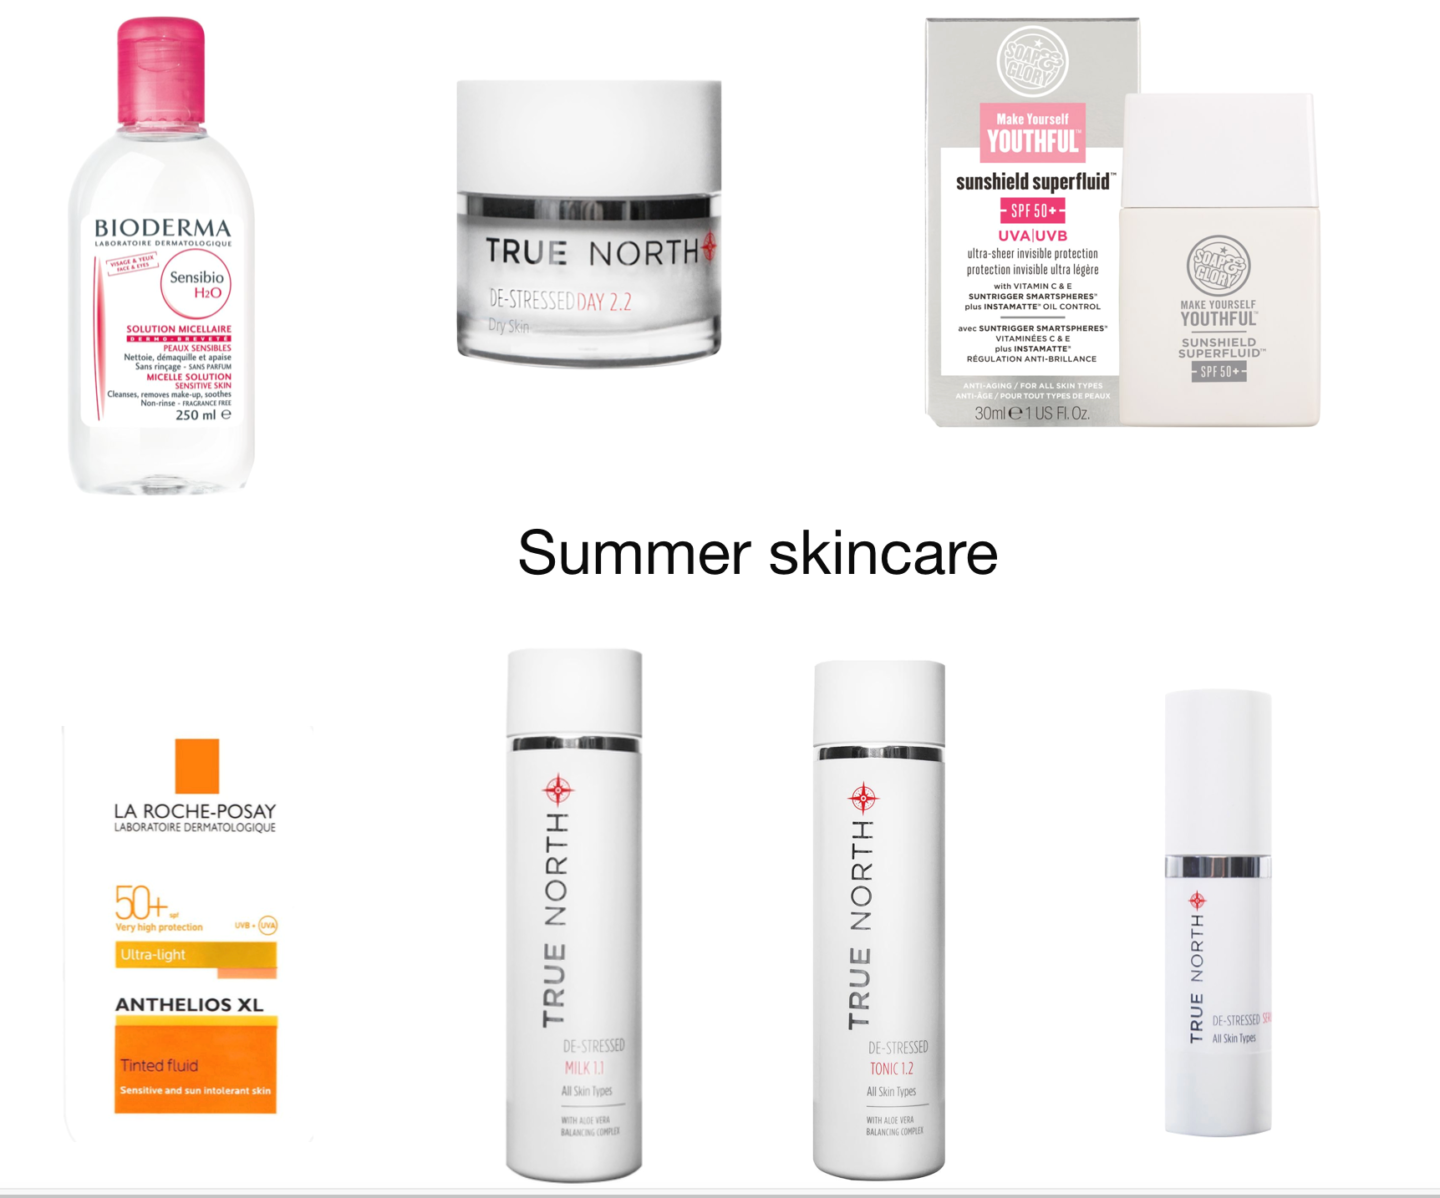 My summer skincare routine